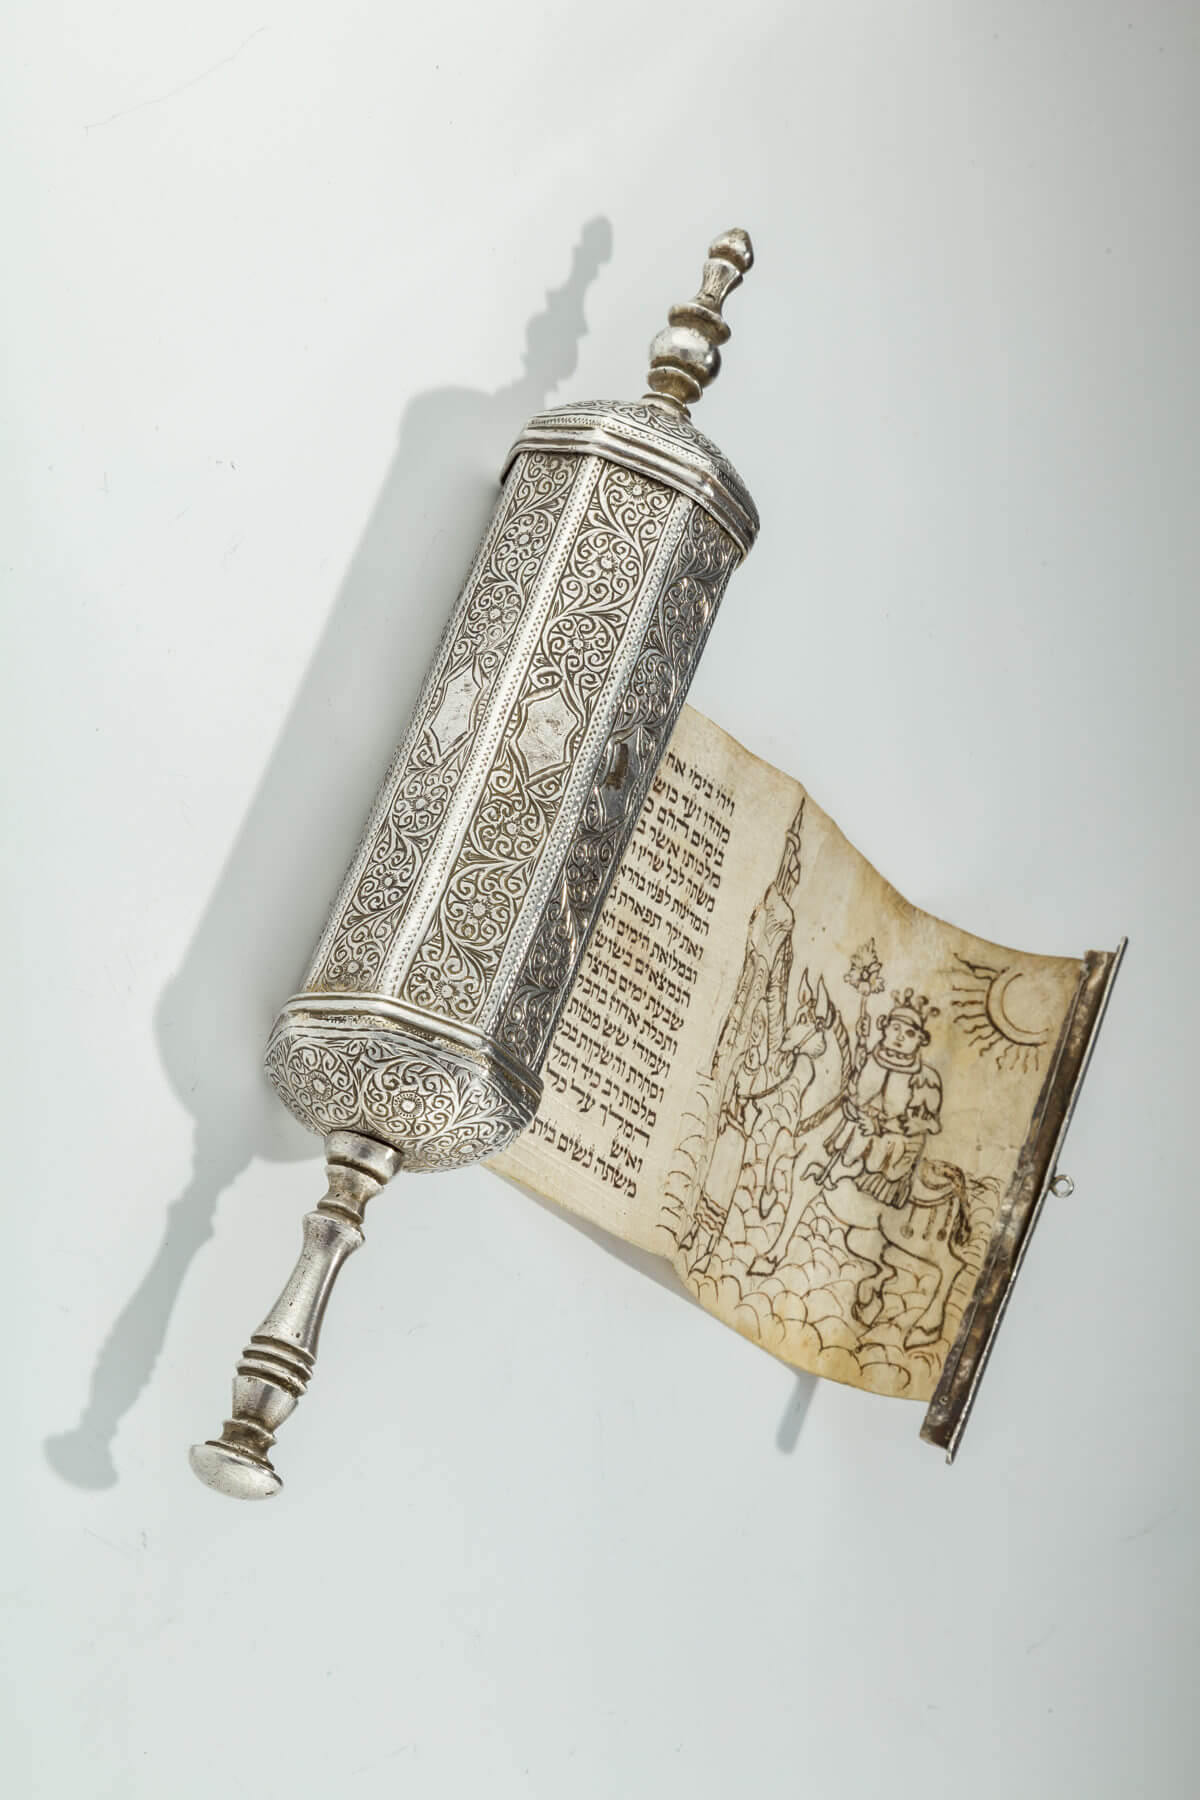 081. A Silver Megillah Case with Original Megillah